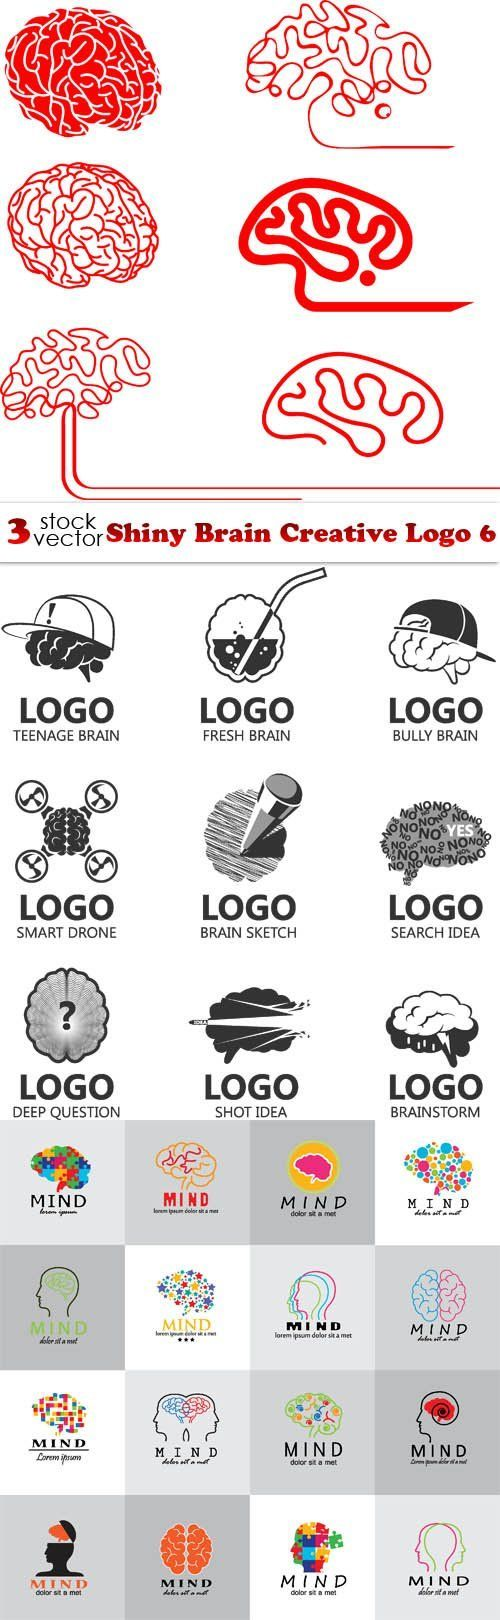 Vectors Shiny Brain Creative Logo 6 Cartao de visita